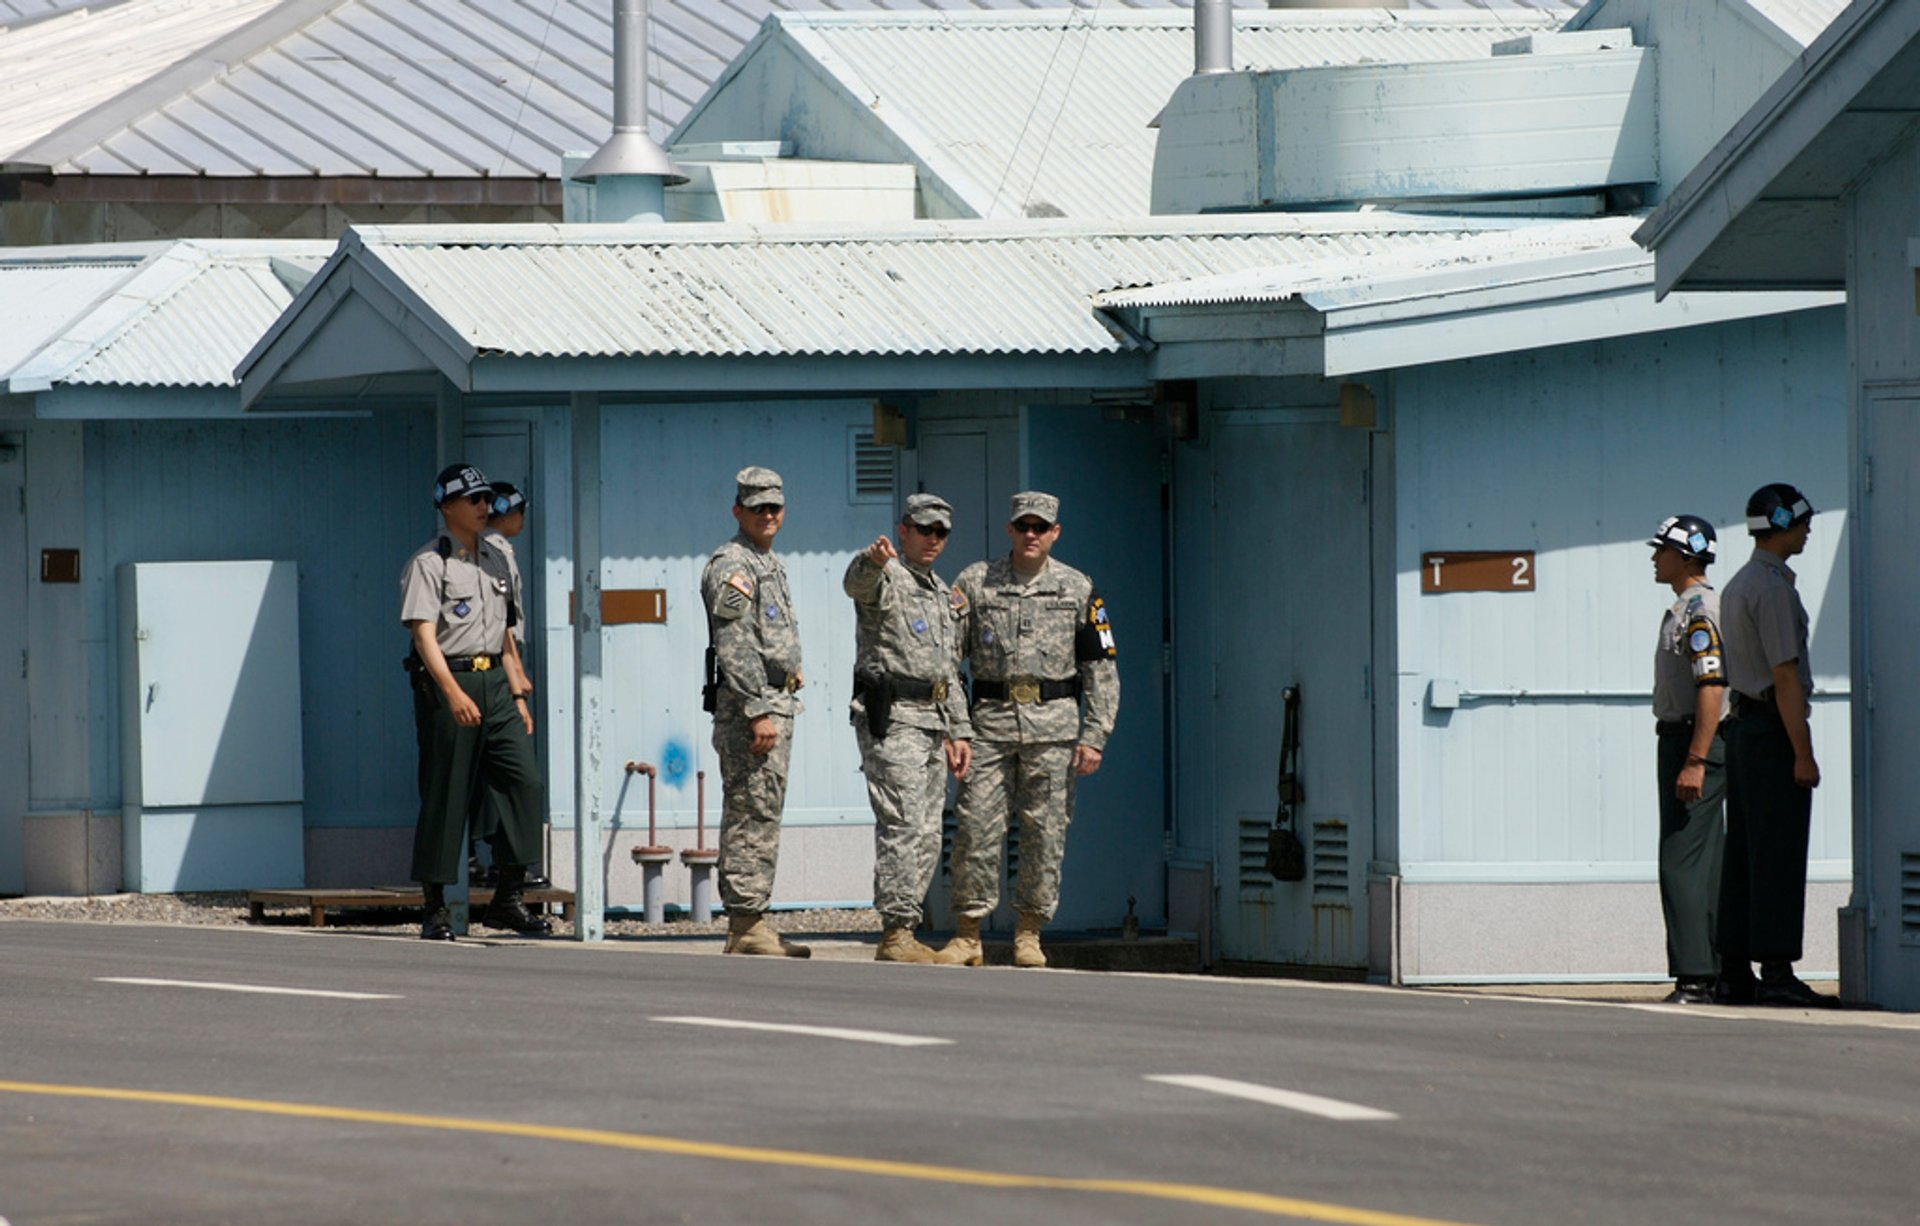 Best time for Demilitarized Zone (DMZ) in South Korea 2020